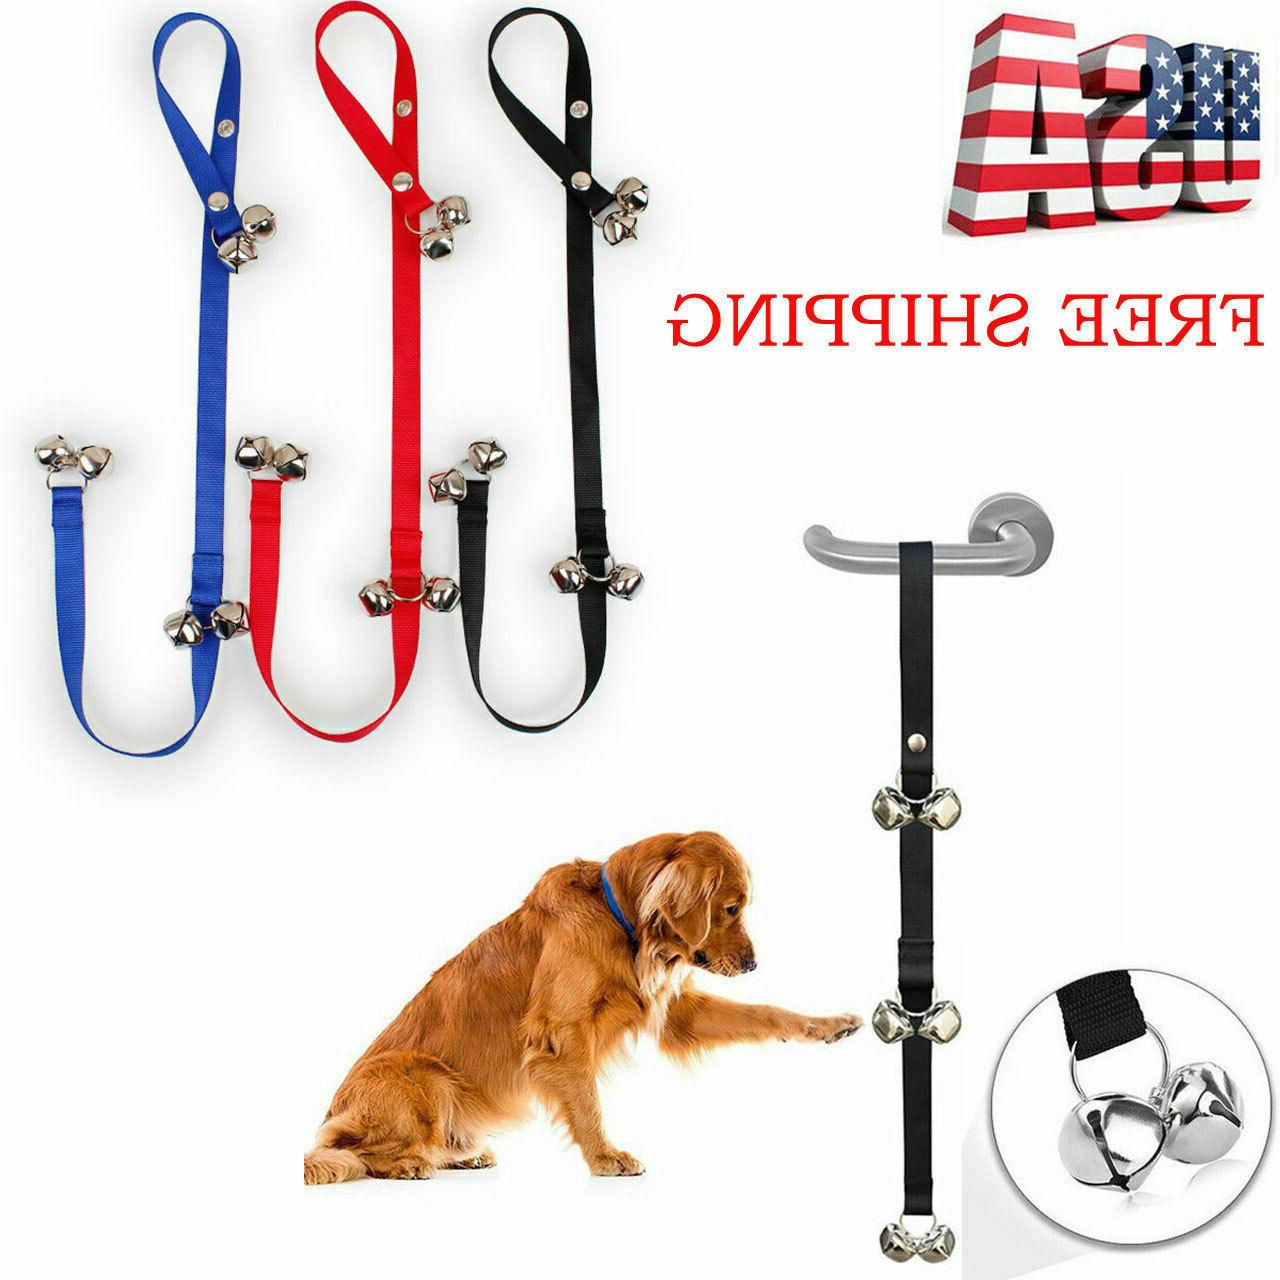 Adjustable Pet Training Bell Puppy for Housetraining